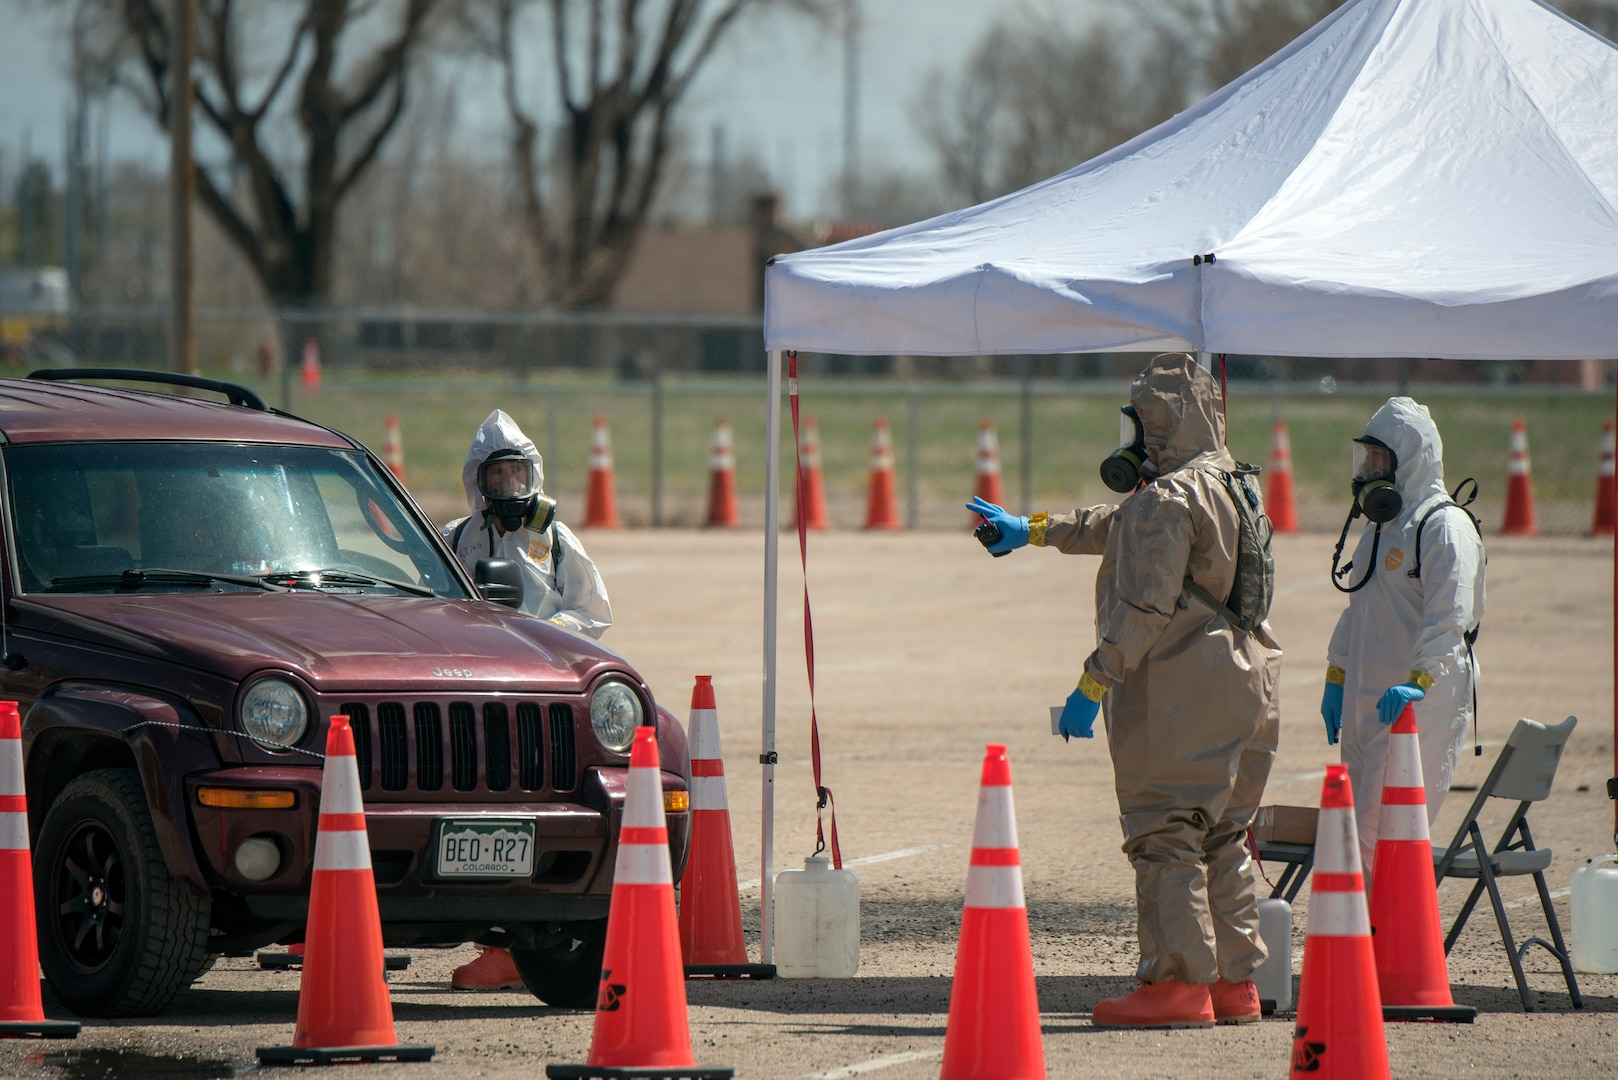 Colorado National Guard members conduct COVID-19 testing at a drive-up site in Greeley, Colorado, April 23, 2020. Nearly 70 Colorado National Guard members from the Chemical, Biological, Radiological, Nuclear and high-yield (CBRNE) Enhanced Response Force Package (CERFP) tested residents in the Greeley area.